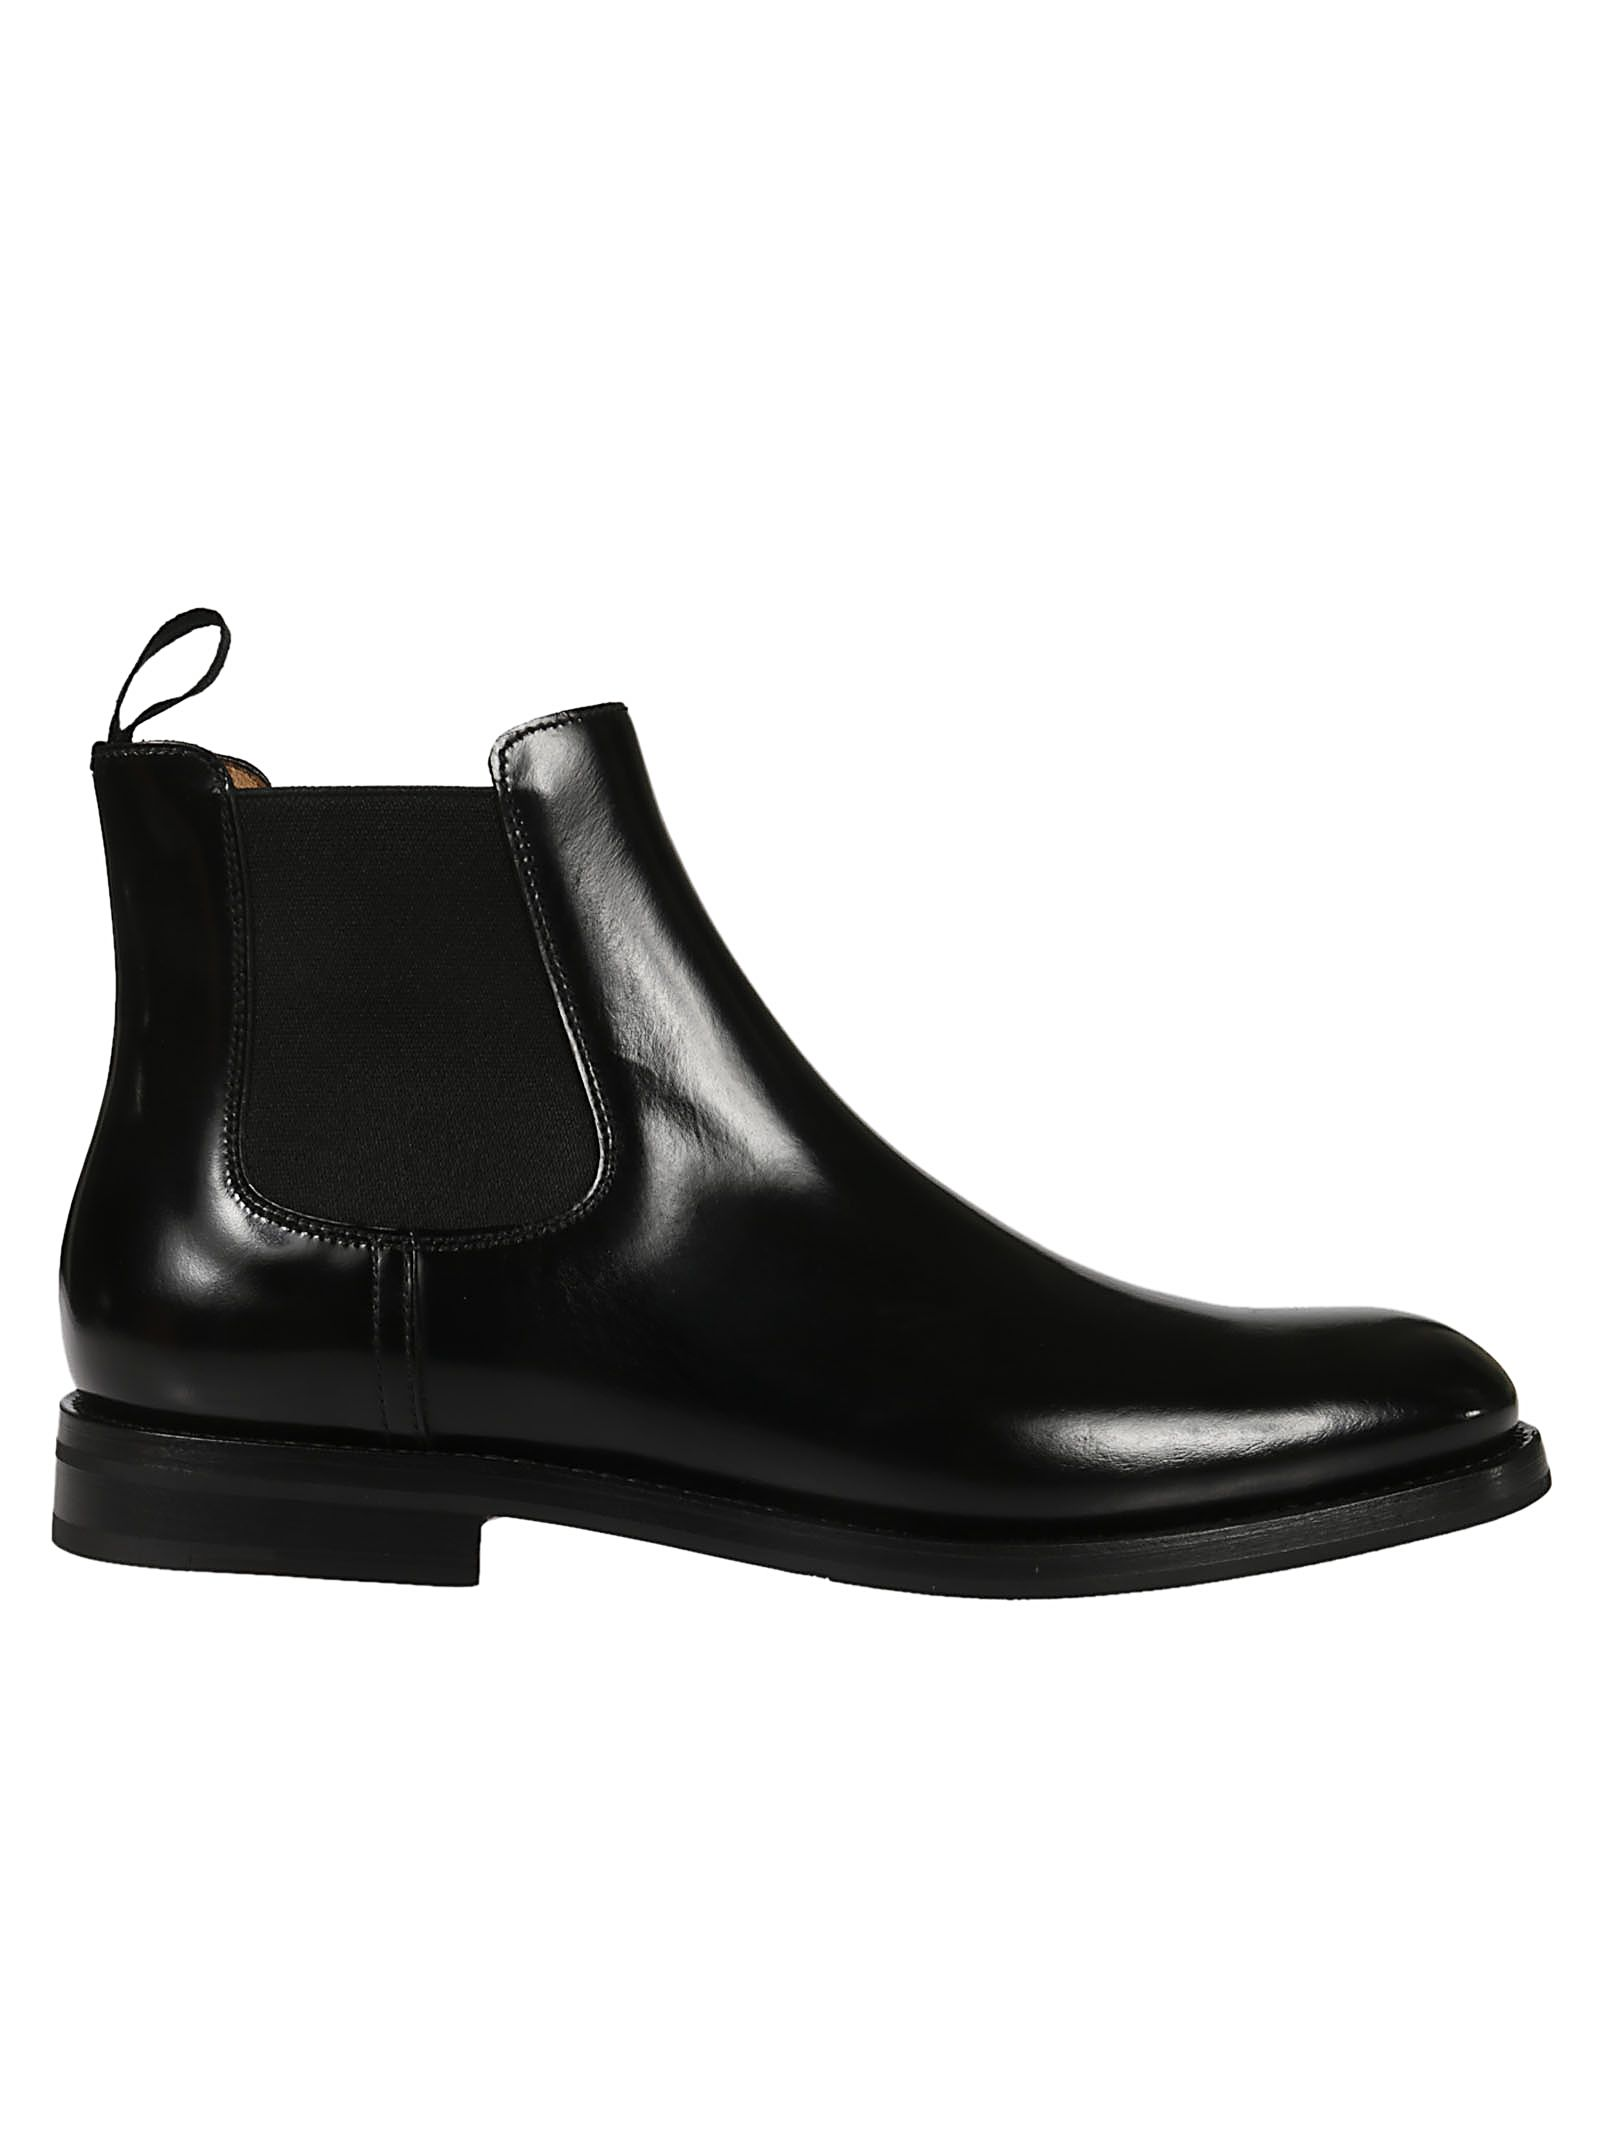 ELASTICATED SIDE BAND BOOTS